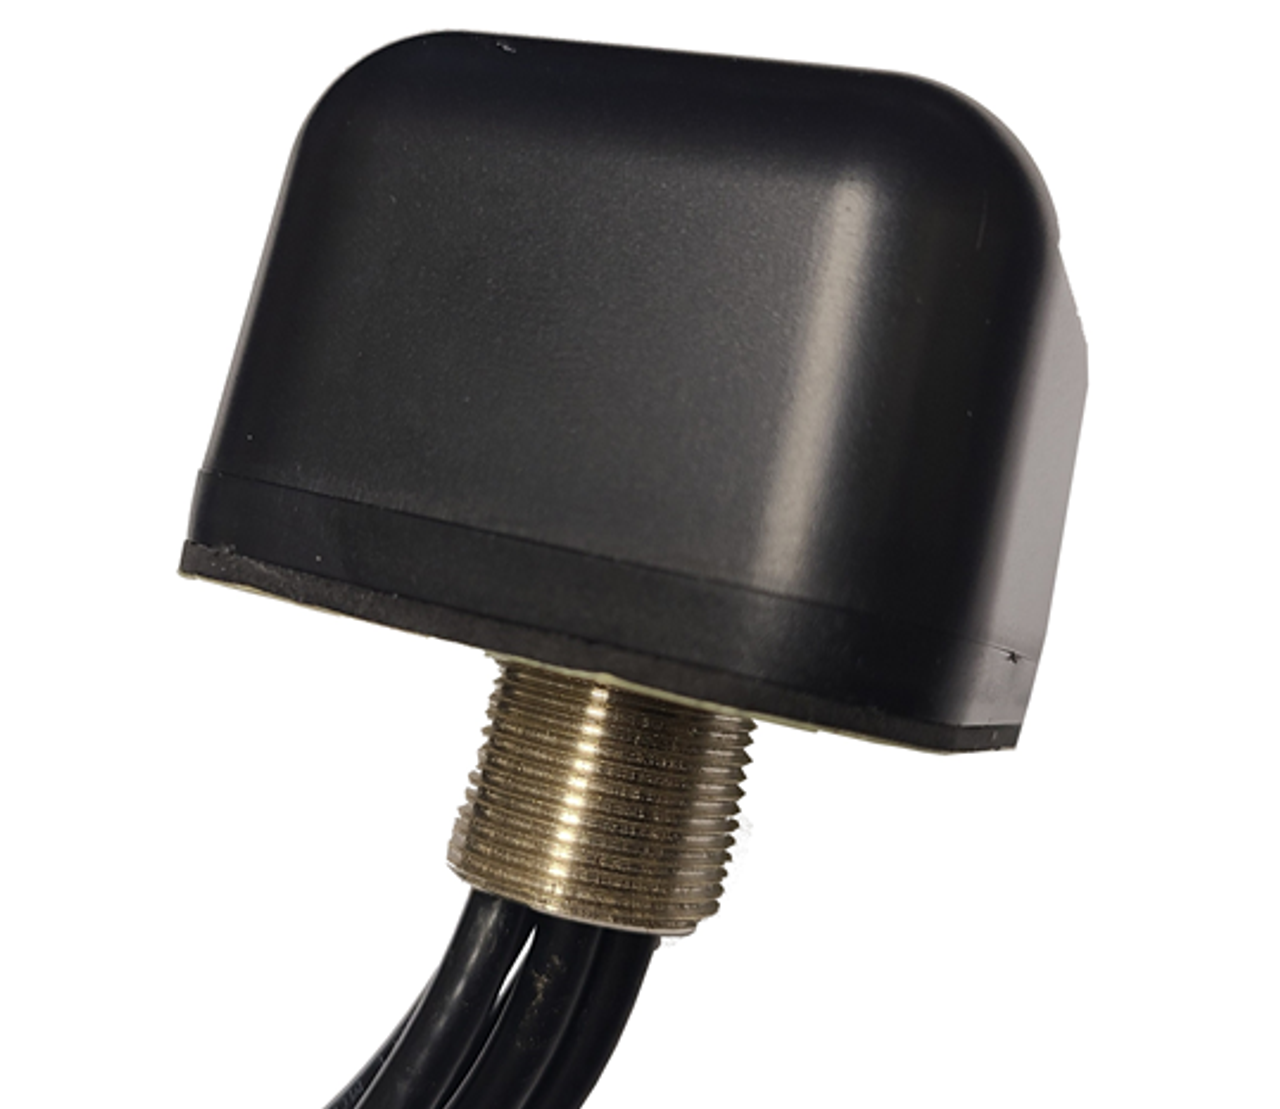 M400B Low Profile Series Bolt Mount Antenna - Side View